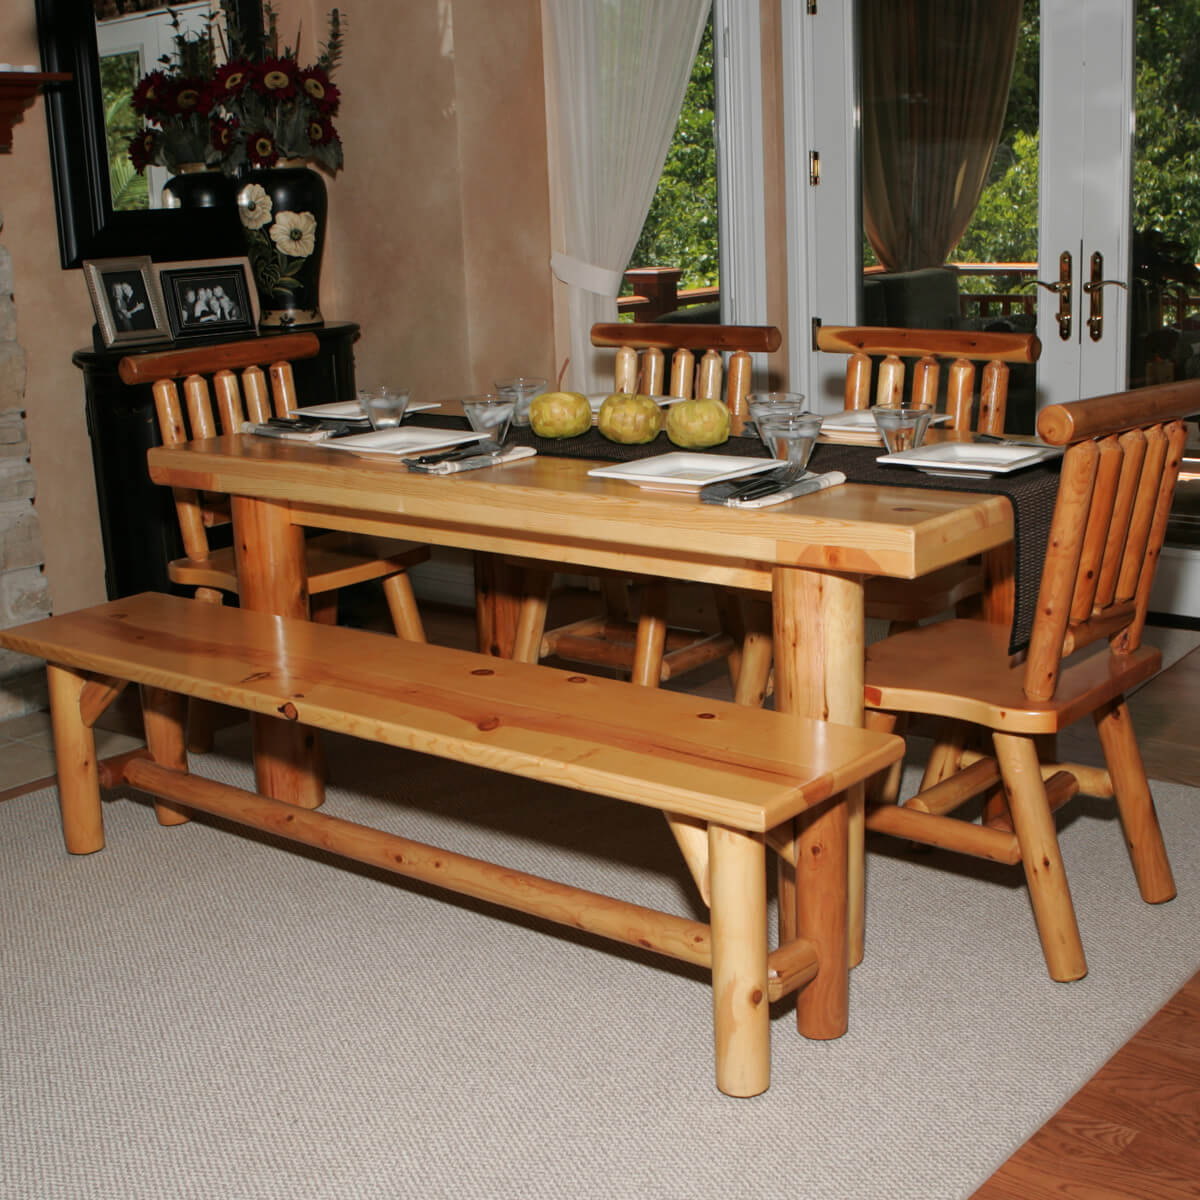 Here's a dining table set with bench perfect for the log cabin or home. Seating 8 people, it's great for large gatherings. It's constructed of white cedar and pine with a truly natural wood look.